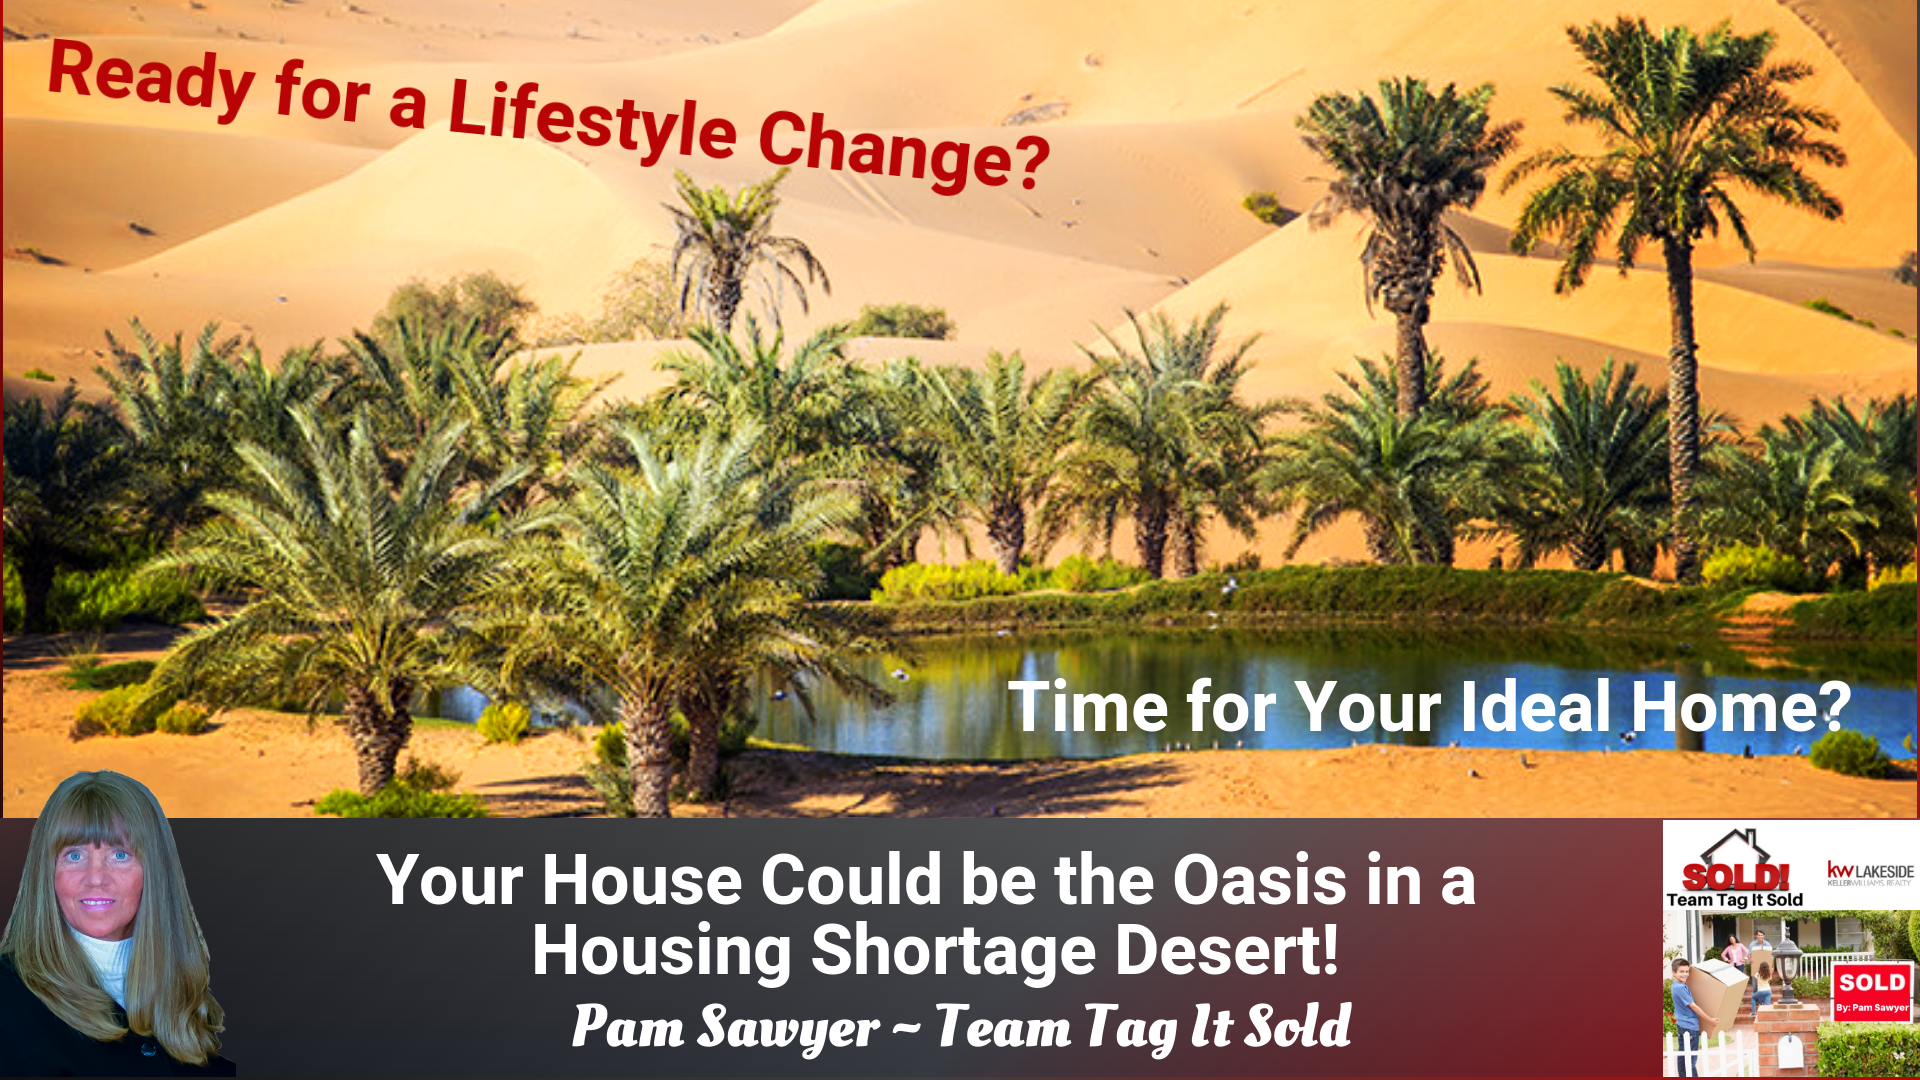 Your Home Could be the Oasis